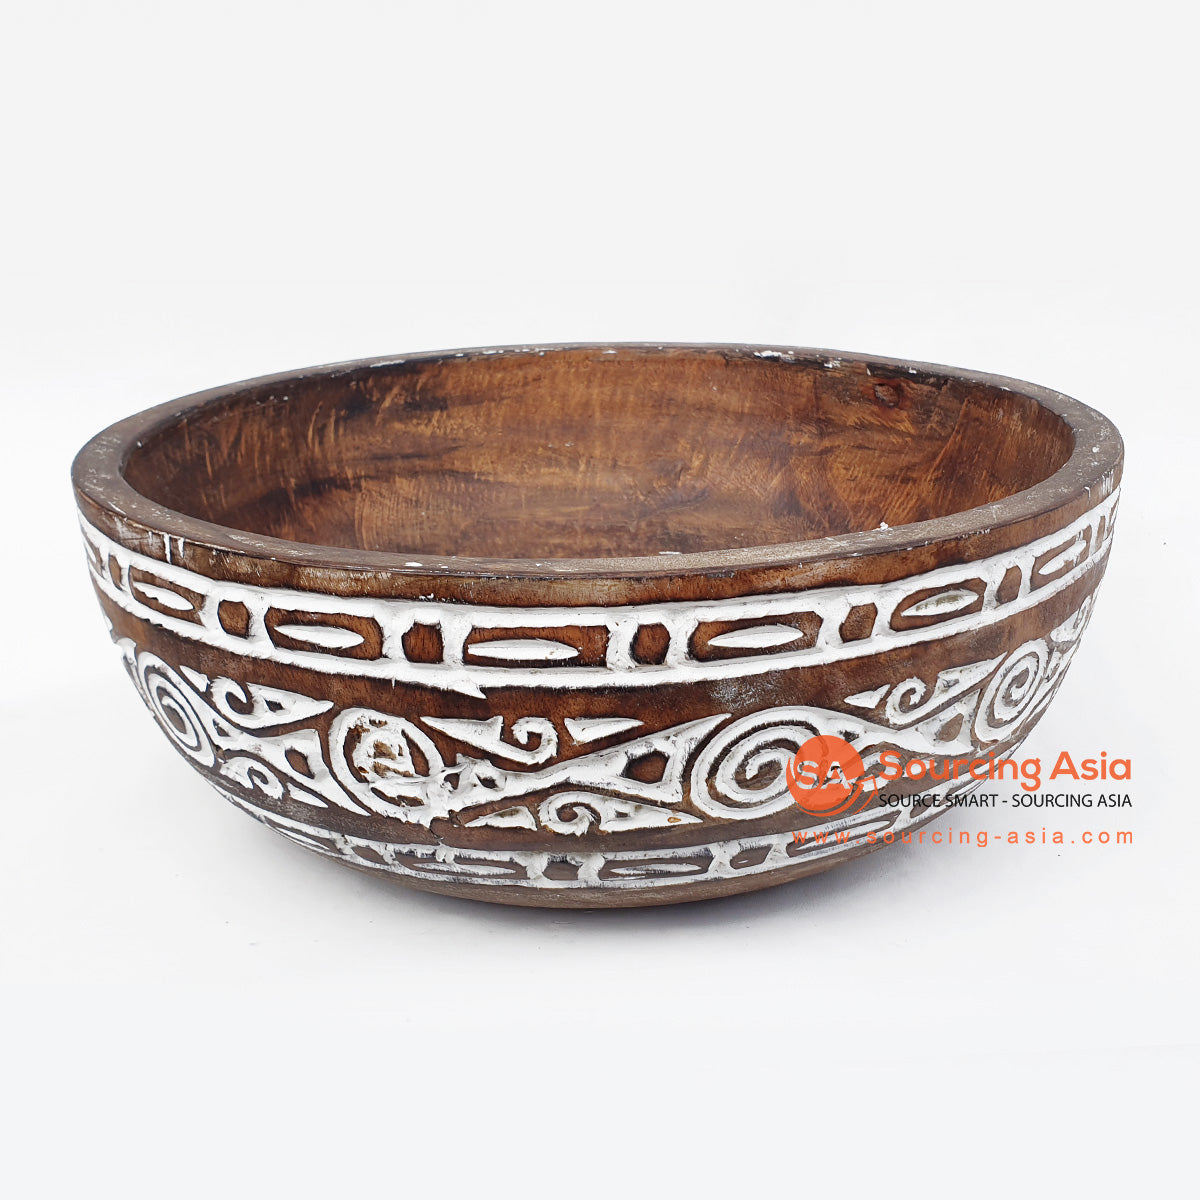 DGPC016-1 ETHNIC TRIBAL CARVED BOWL